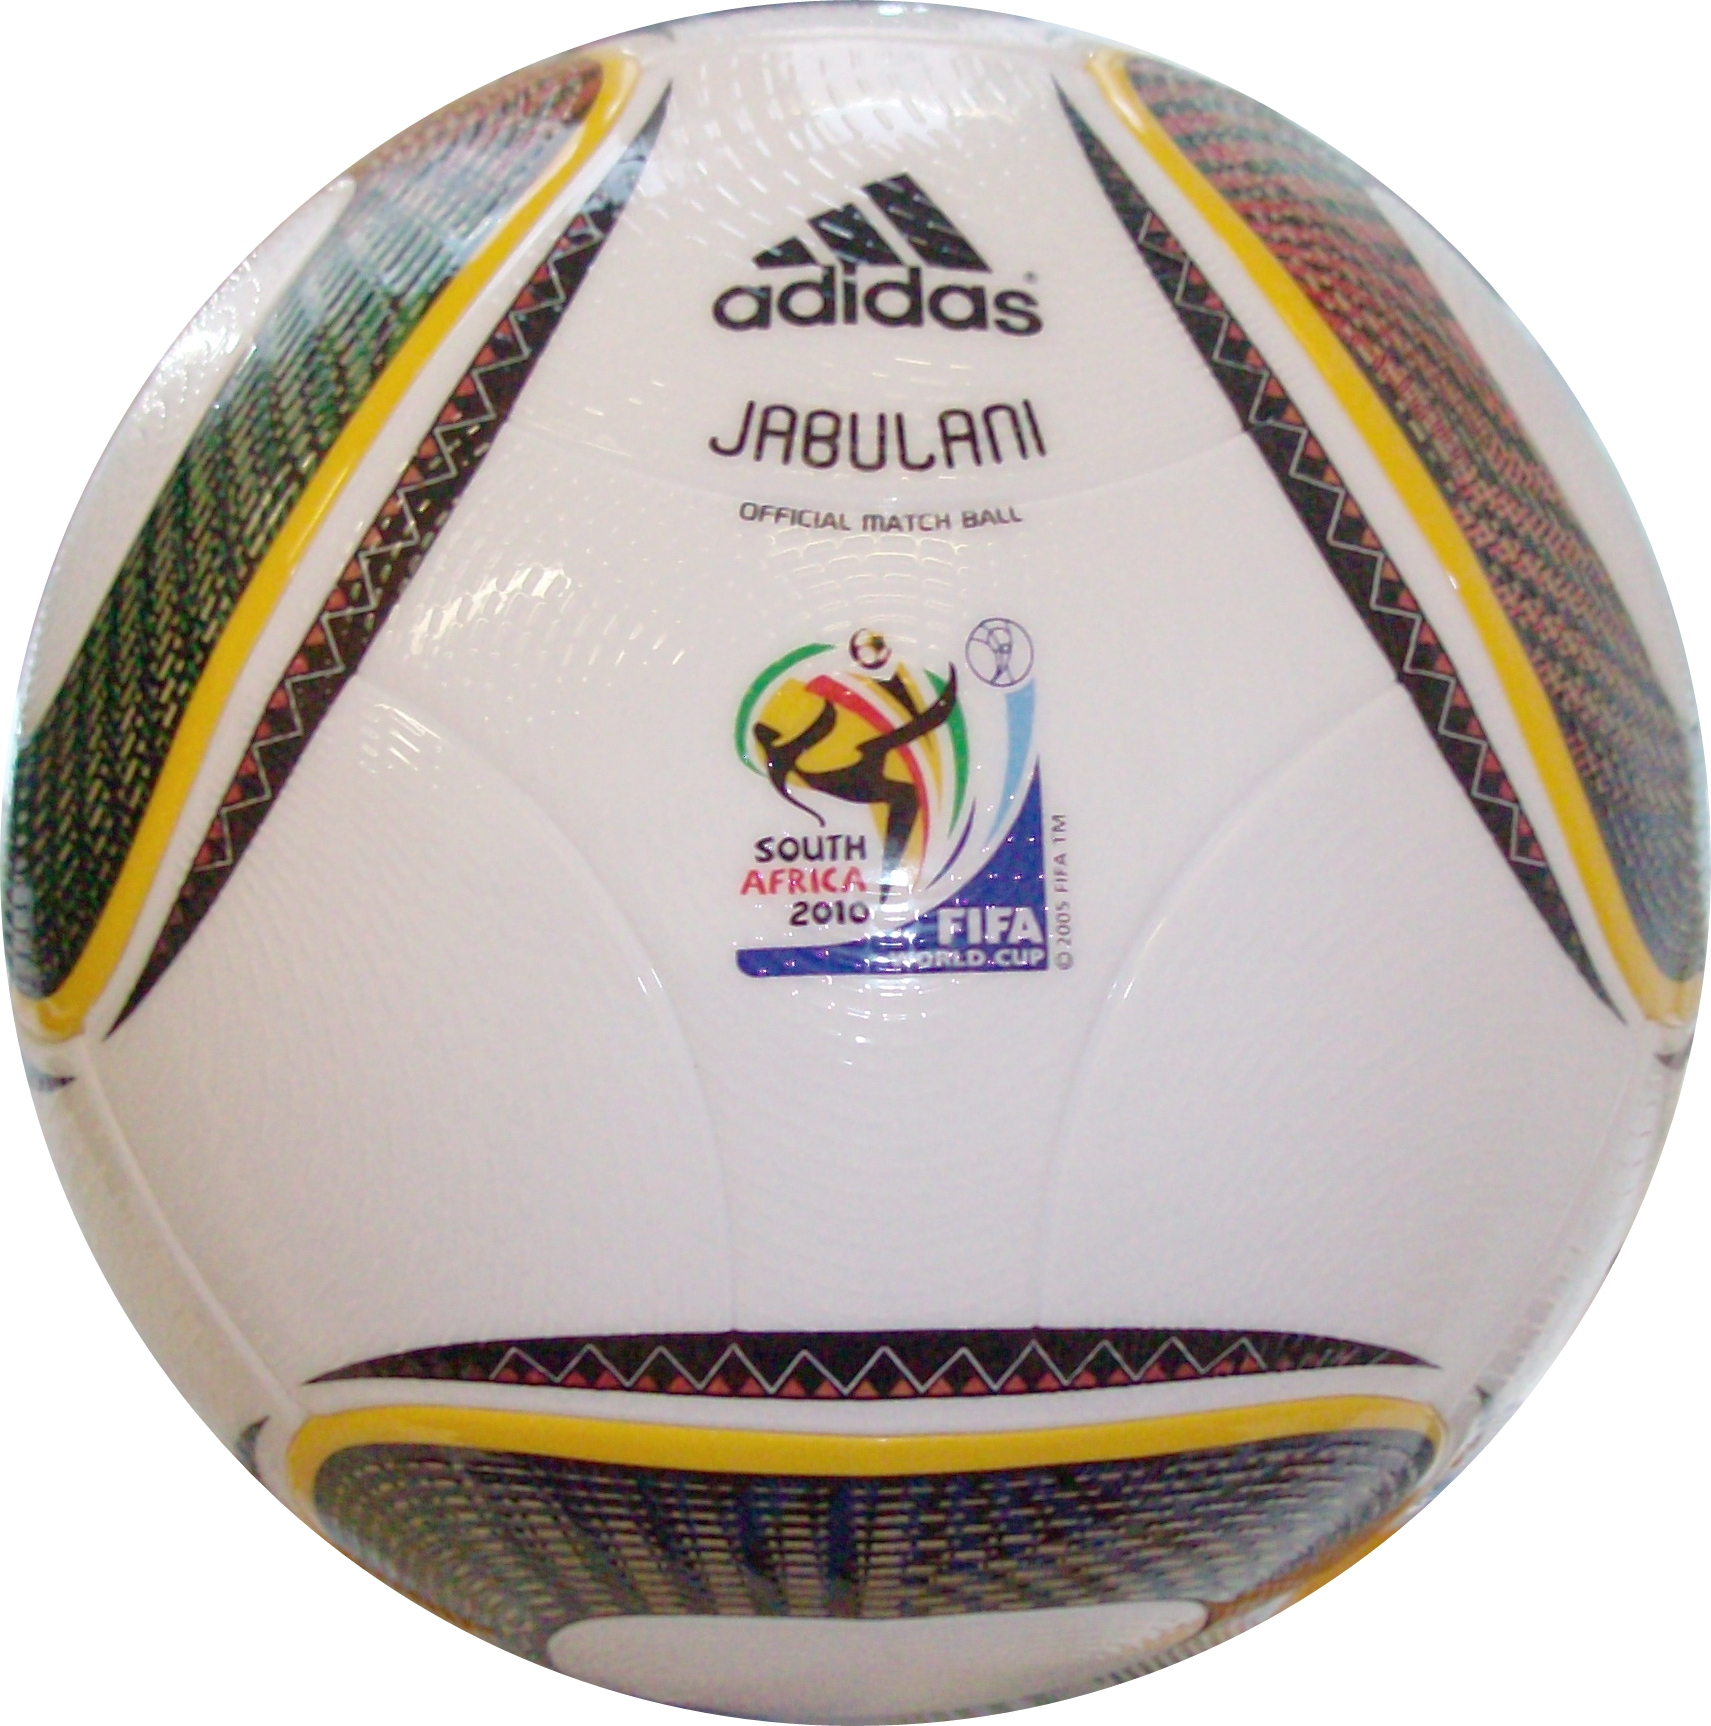 Soccer ball craft ideas - Soccer Ball Craft Ideas 44